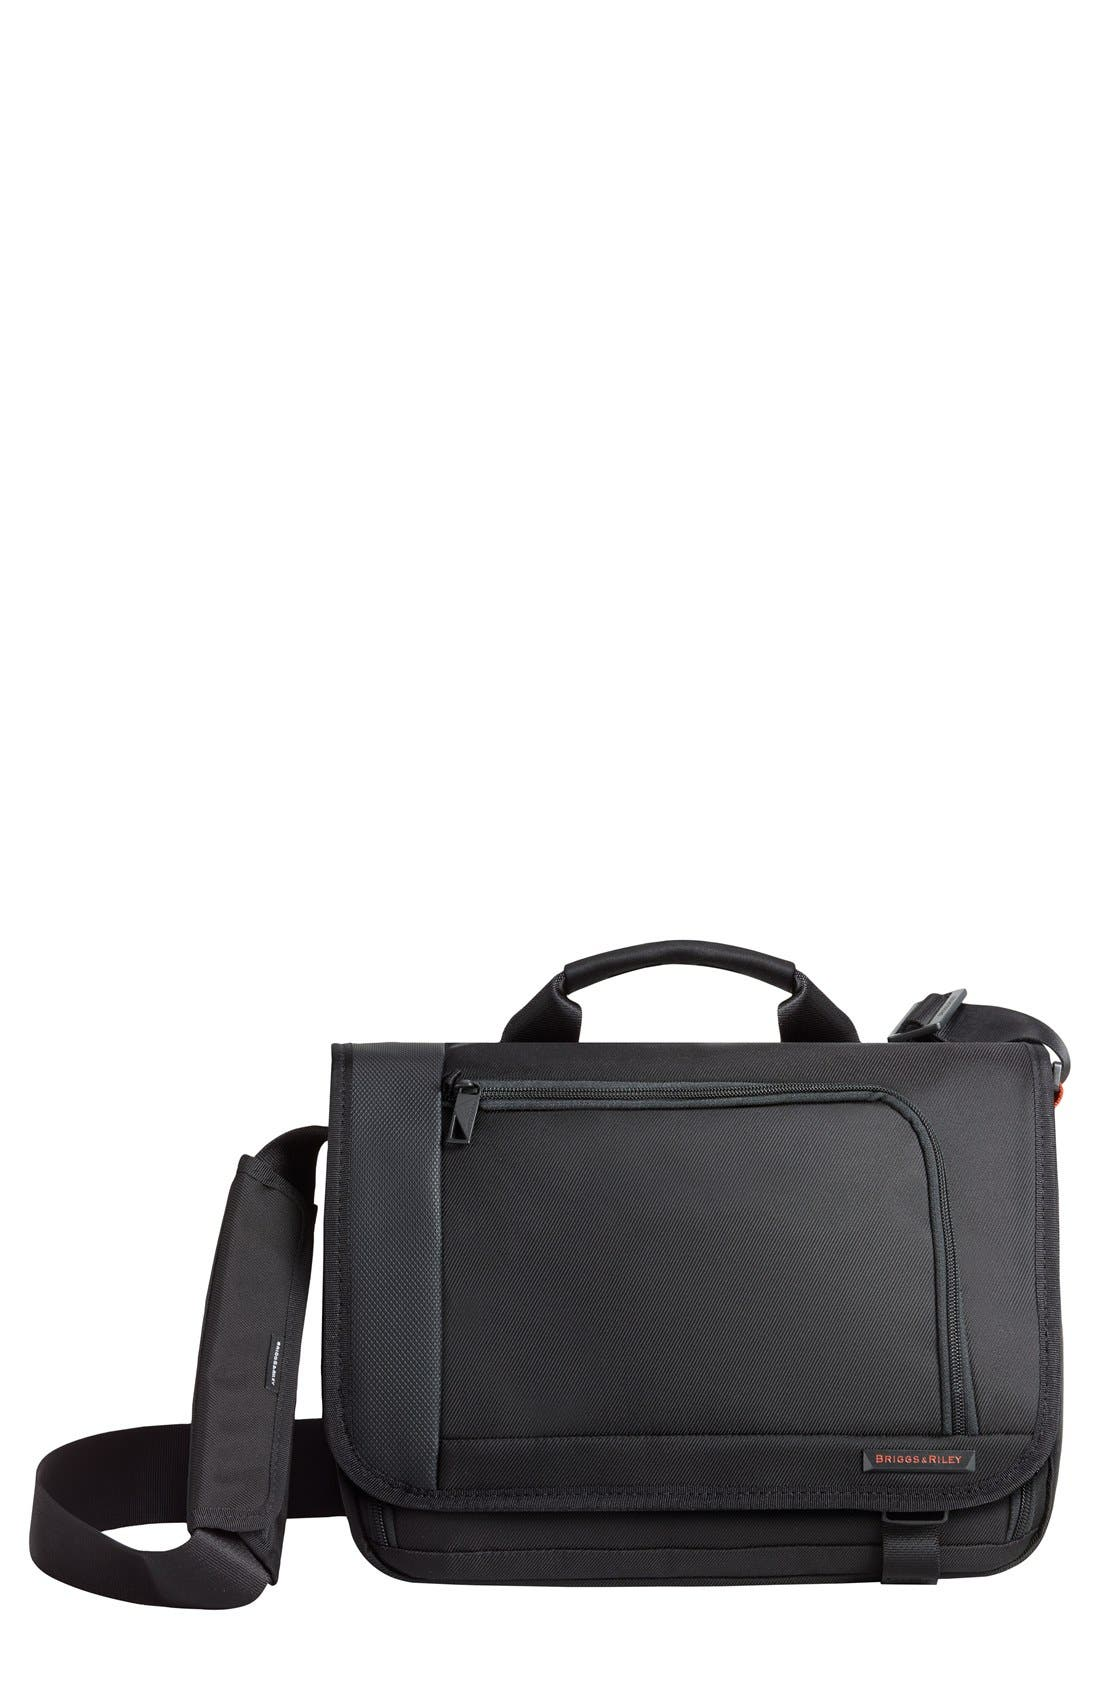 Briggs & Riley 'Verb - Instant' Messenger Bag